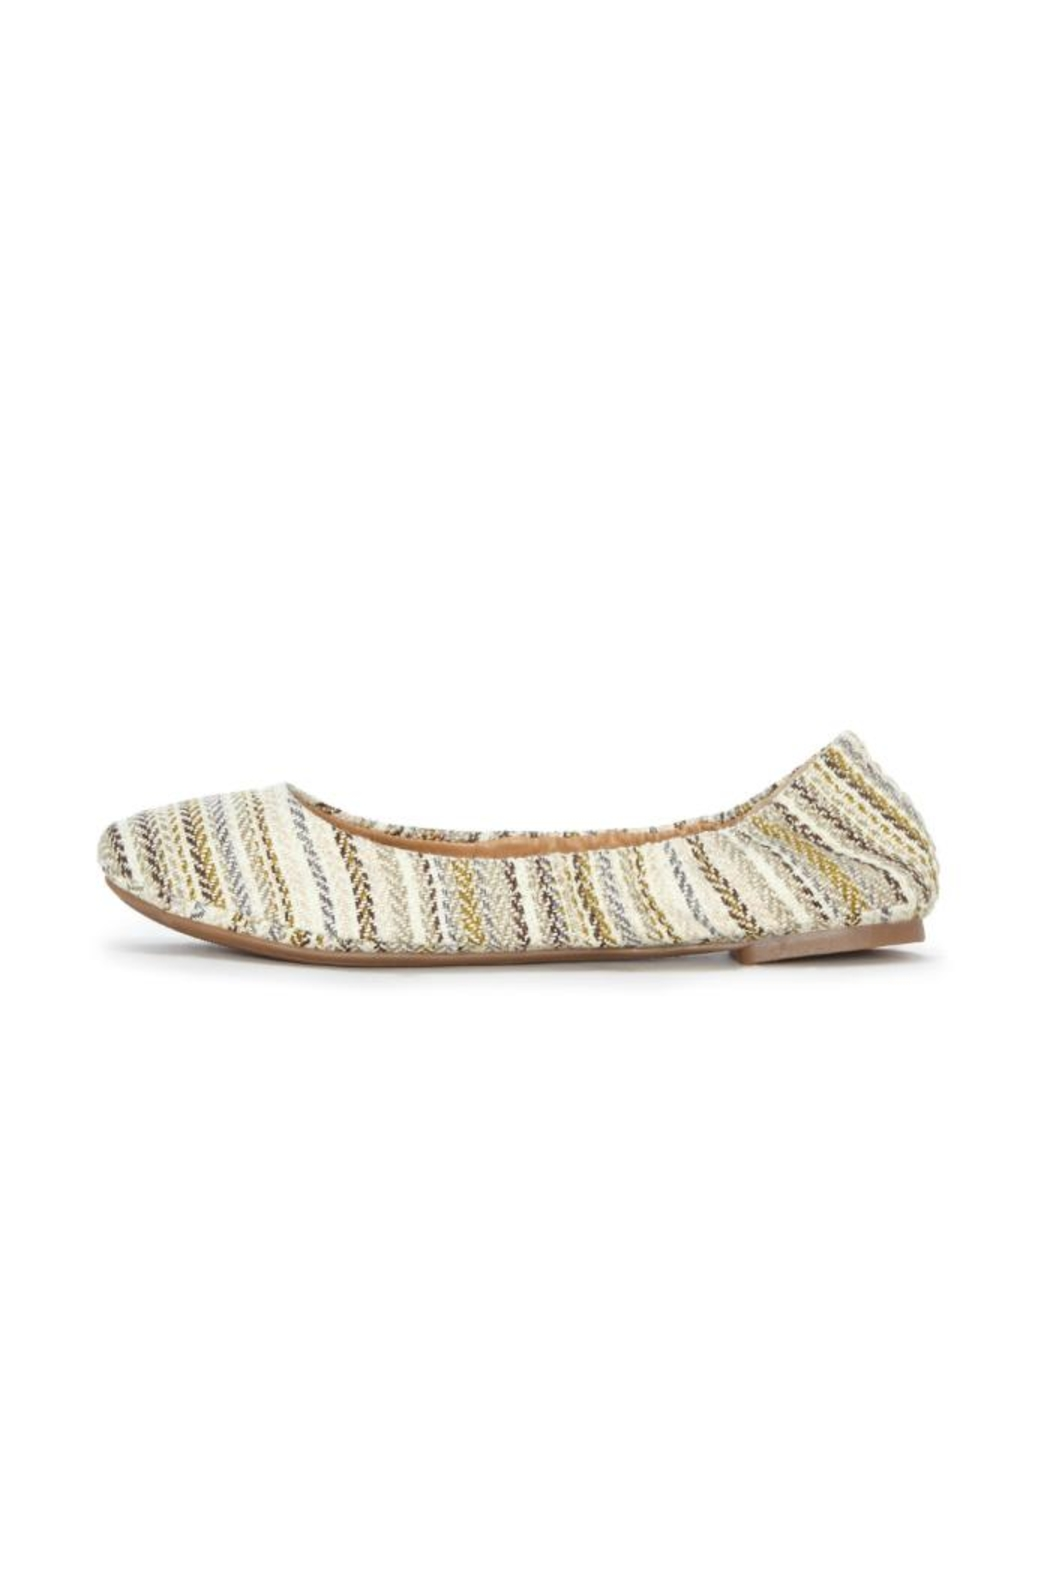 Lucky Brand Emmie Flat Shoes - Main Image